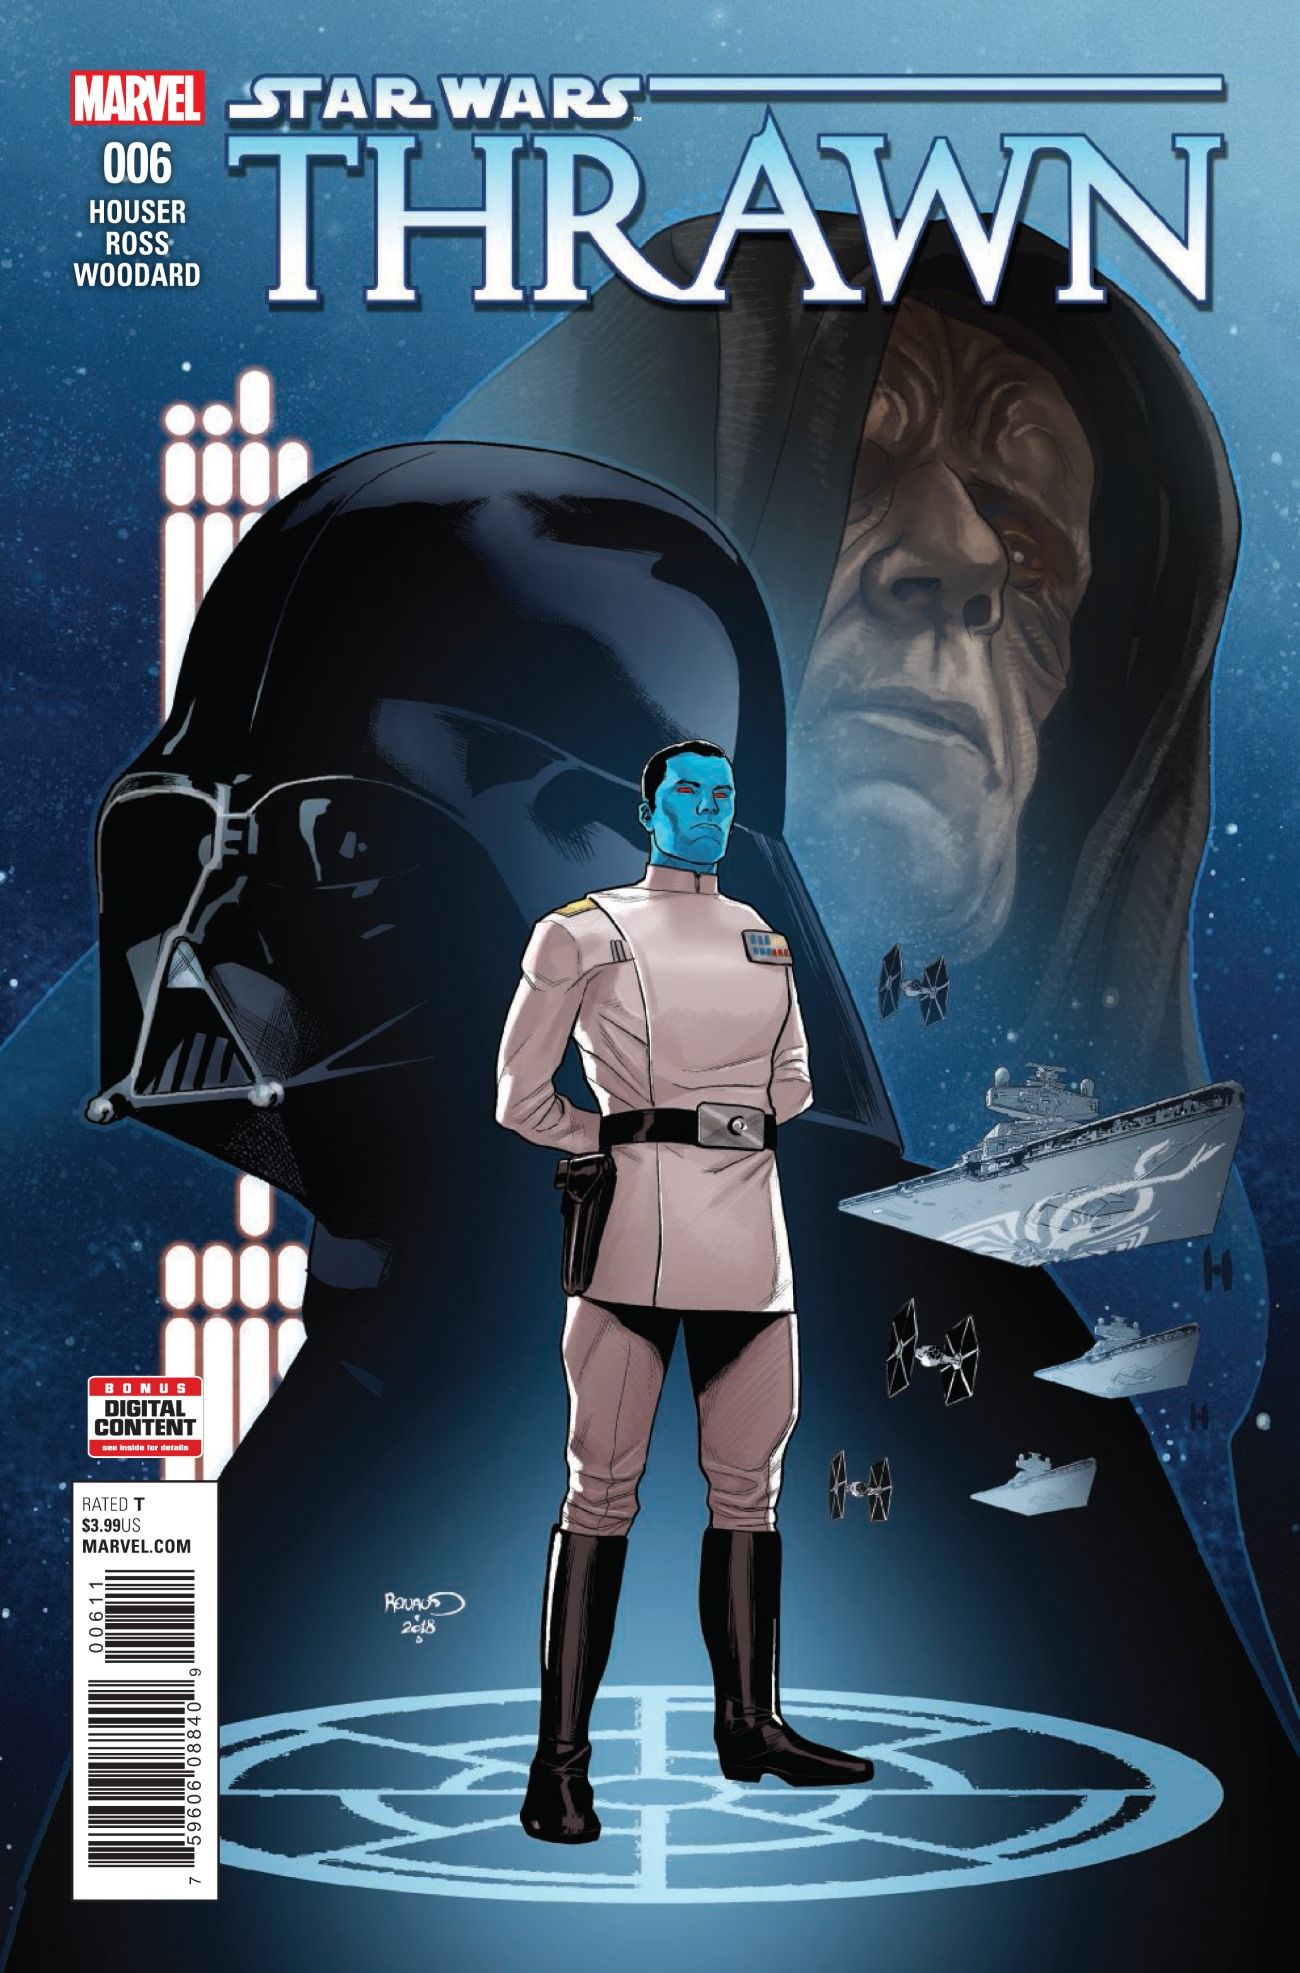 https://static3.srcdn.com/wordpress/wp-content/uploads/2018/07/Star-Wars-Thrawn-Comic-6-Preview.jpg?q=50&fit=crop&w=738